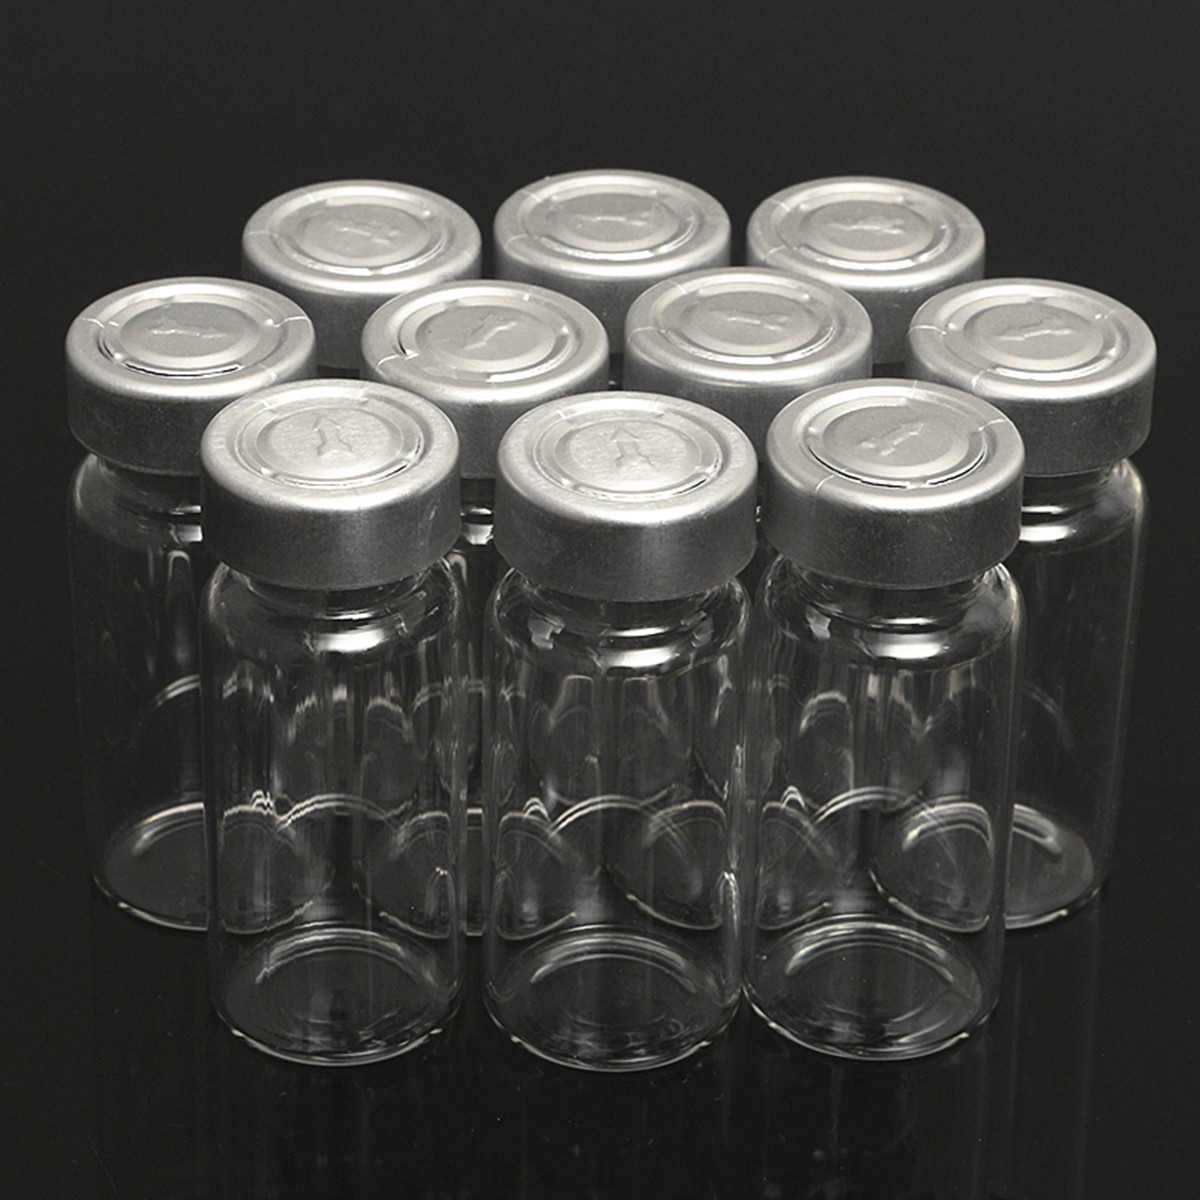 10Pcs 10ml Sample Vials Bottles w/ Stopper Caps for 20MM Hand Crimper Seal Ring Machine